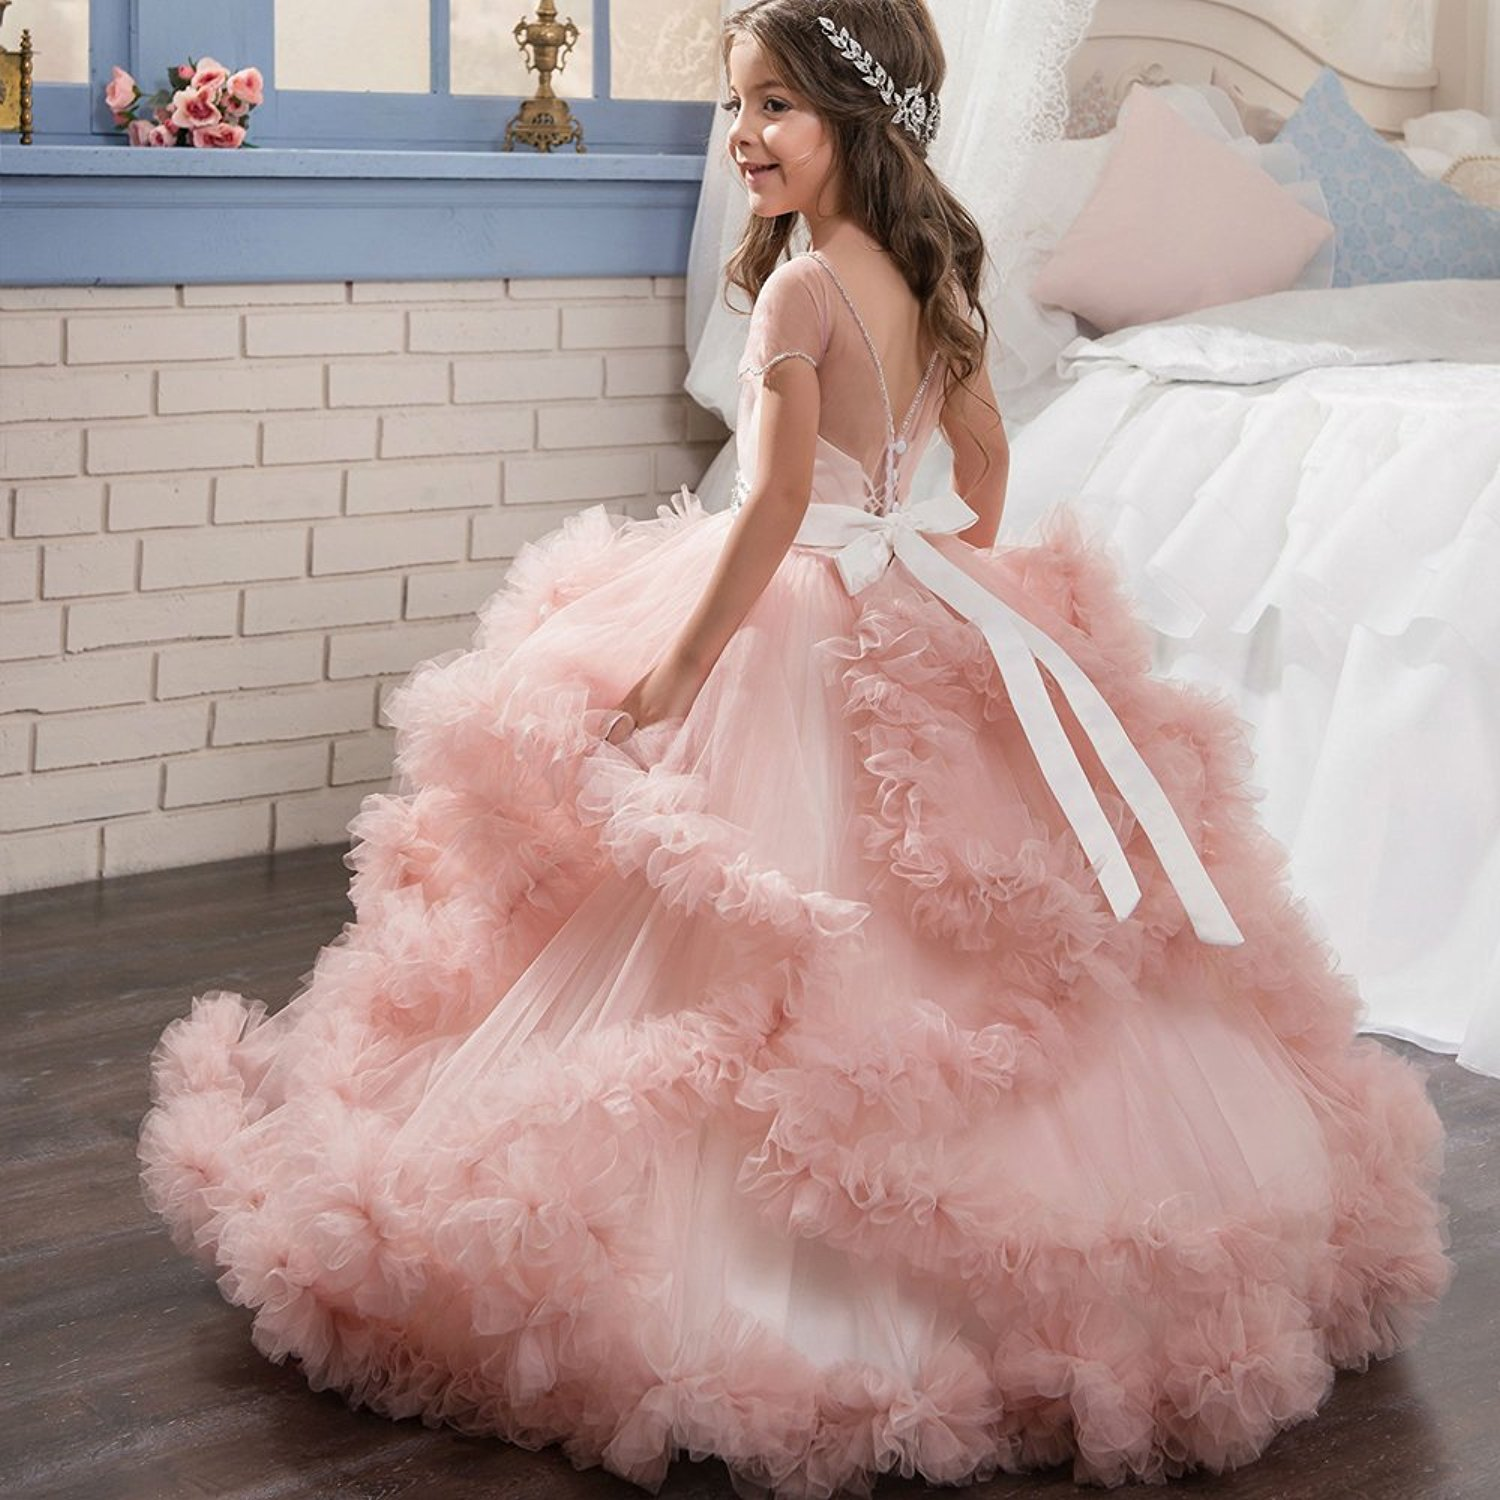 d4d7a11de ABYABYGO Luxury Princess Christmas and New Year Party Dresses Baby ...